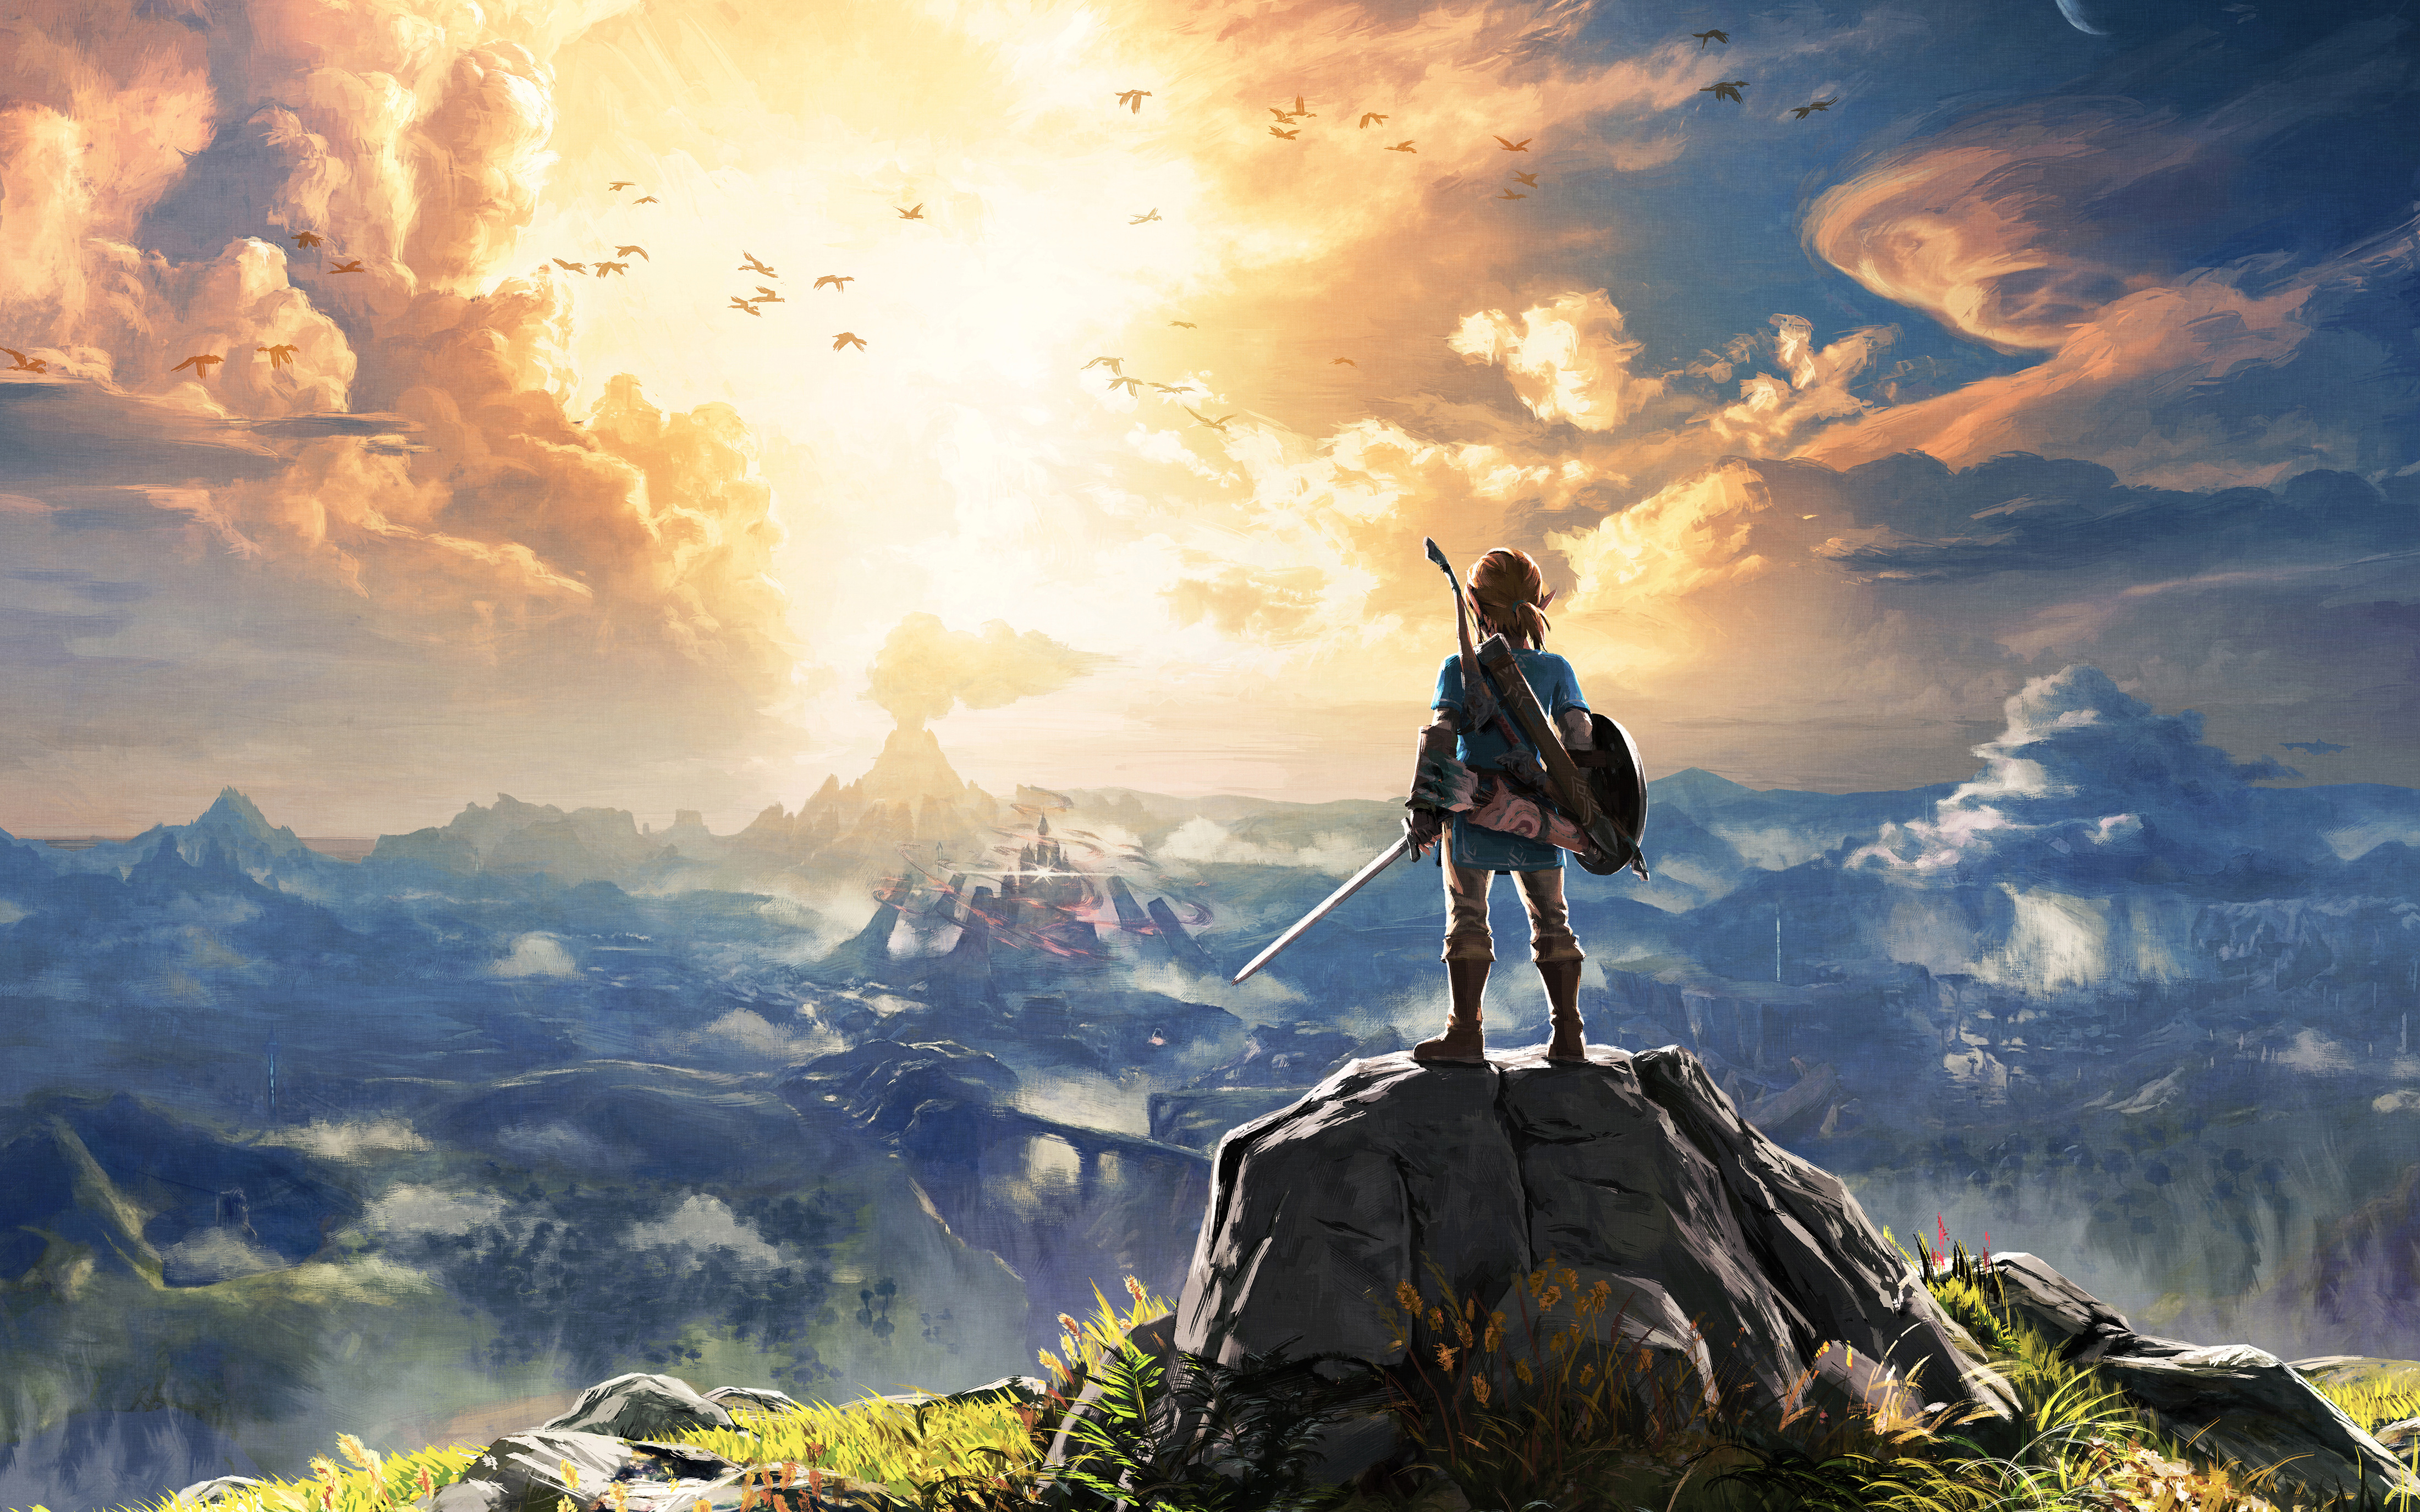 Breath Of The Wild Desktop: Nintendo Releases Accolades Trailer For Breath Of The Wild